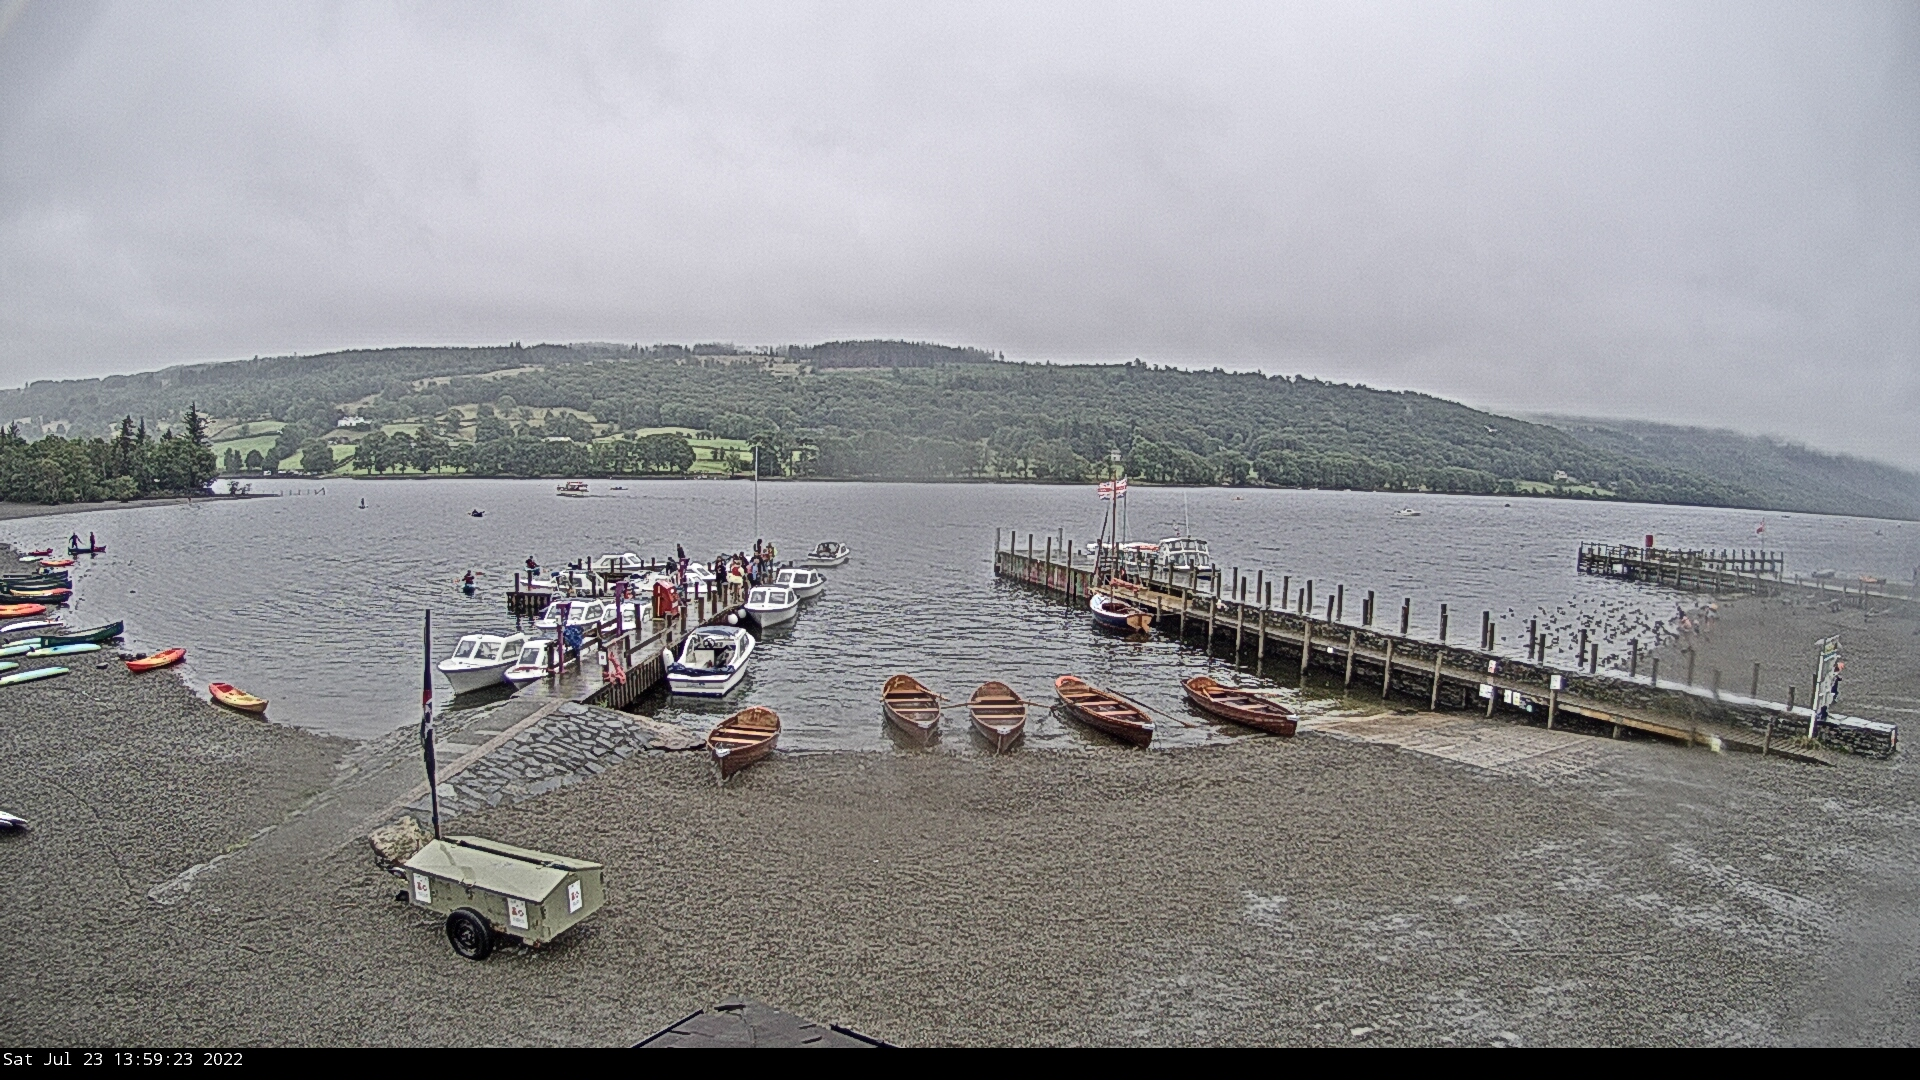 Webcam at Coniston Lake District